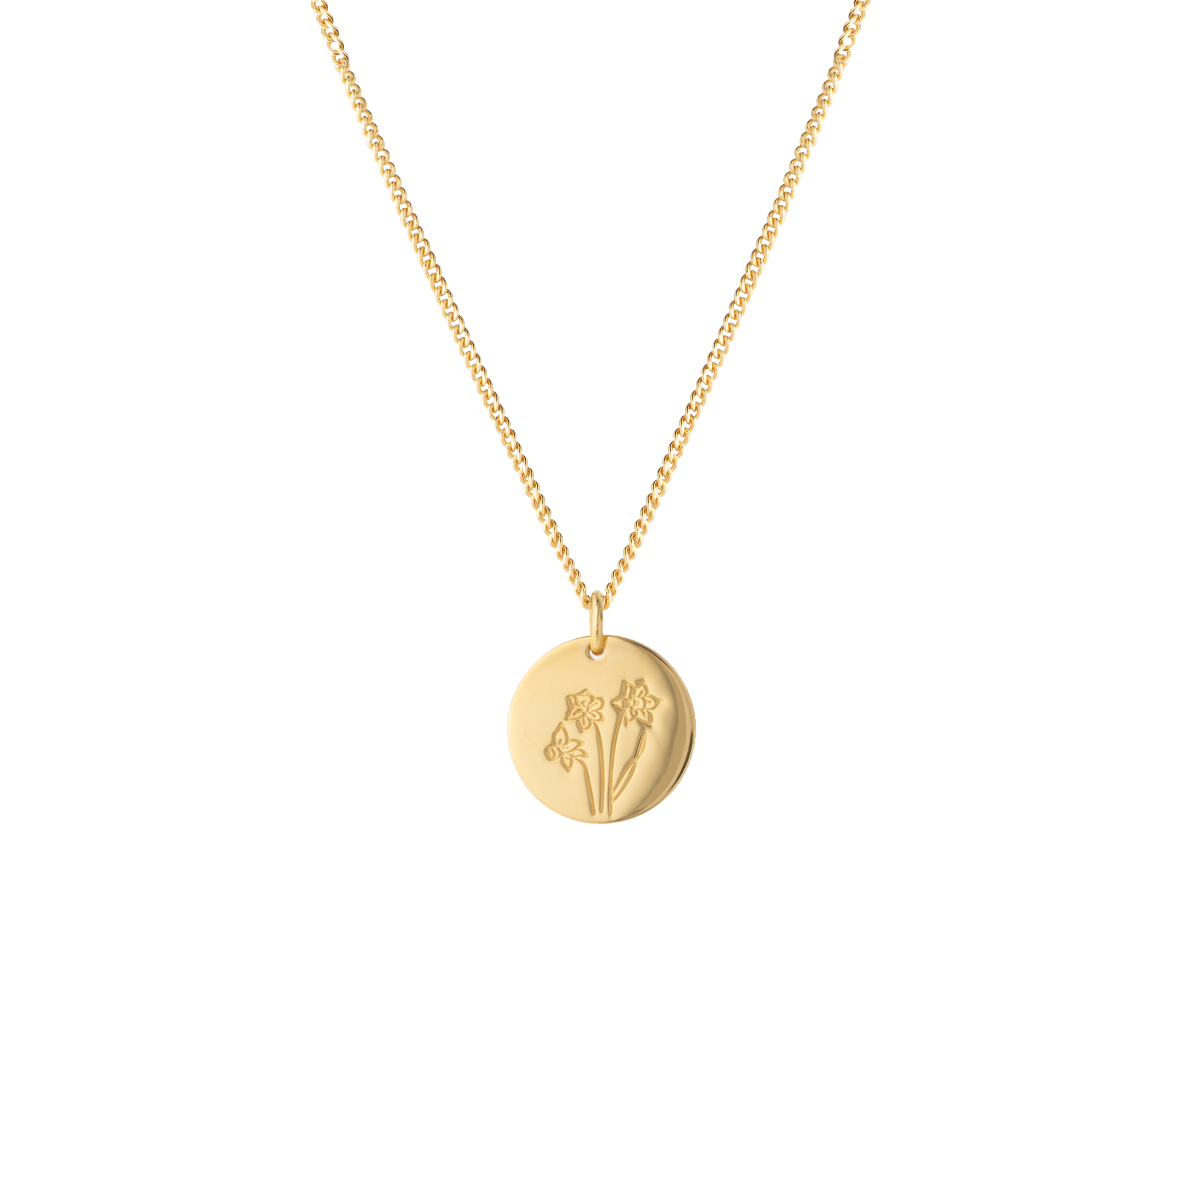 birthflower necklace goud narcis